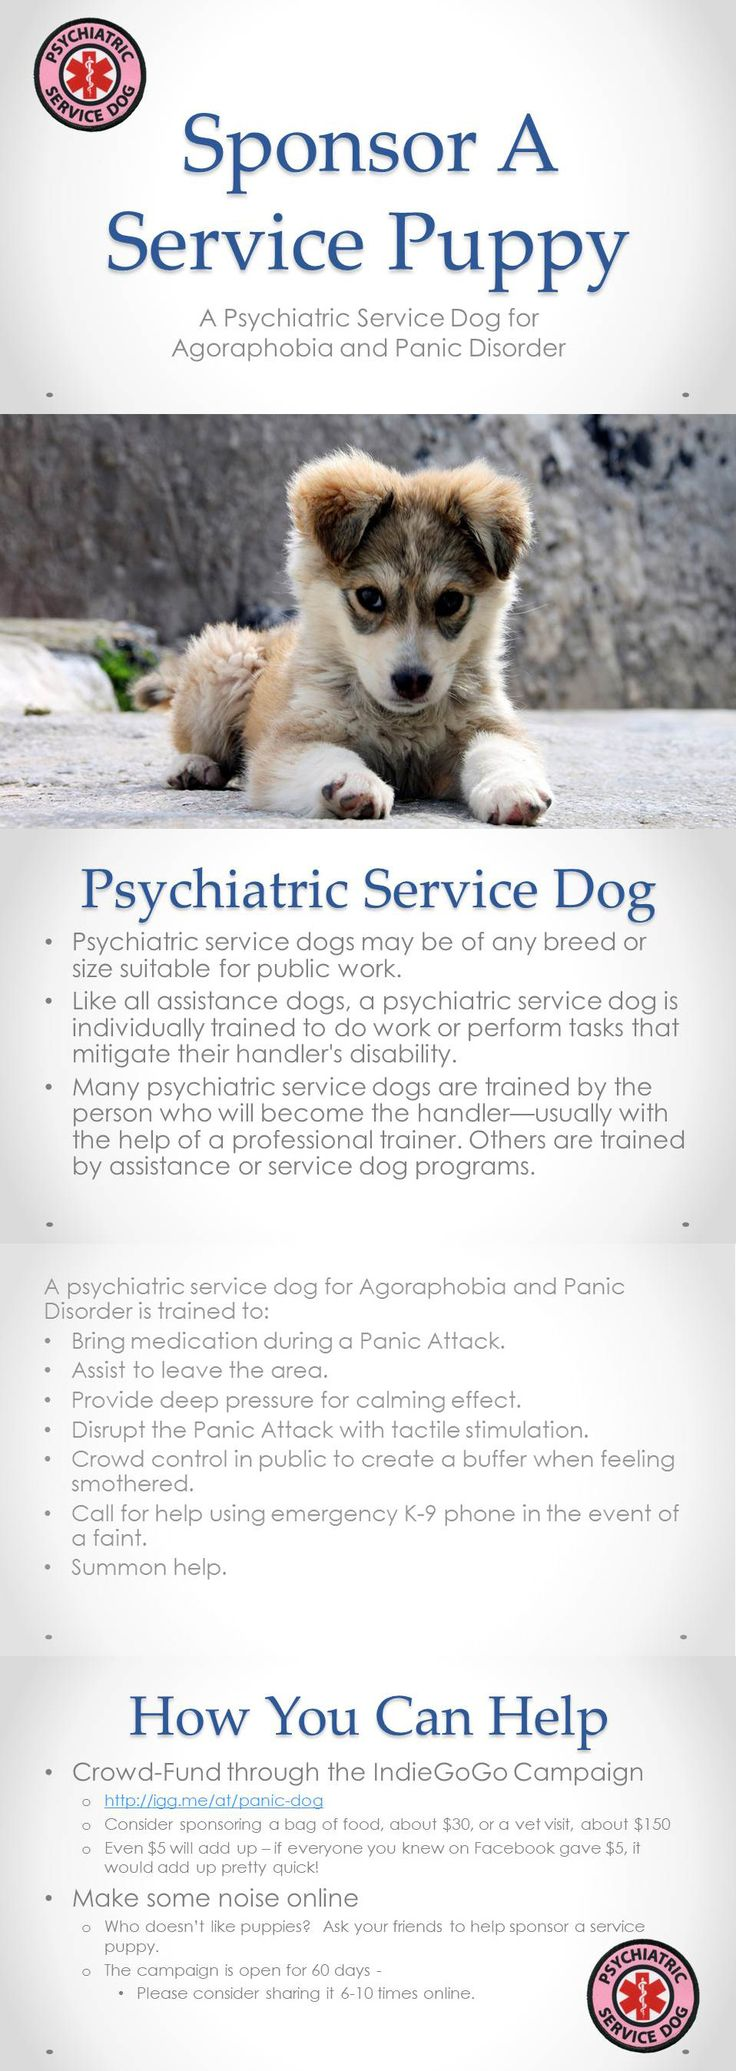 Psychiatric Service Dog Information on psychiatric service dogs and their tasks.  https://www.facebook.com/diyservicedog/ #servicedog